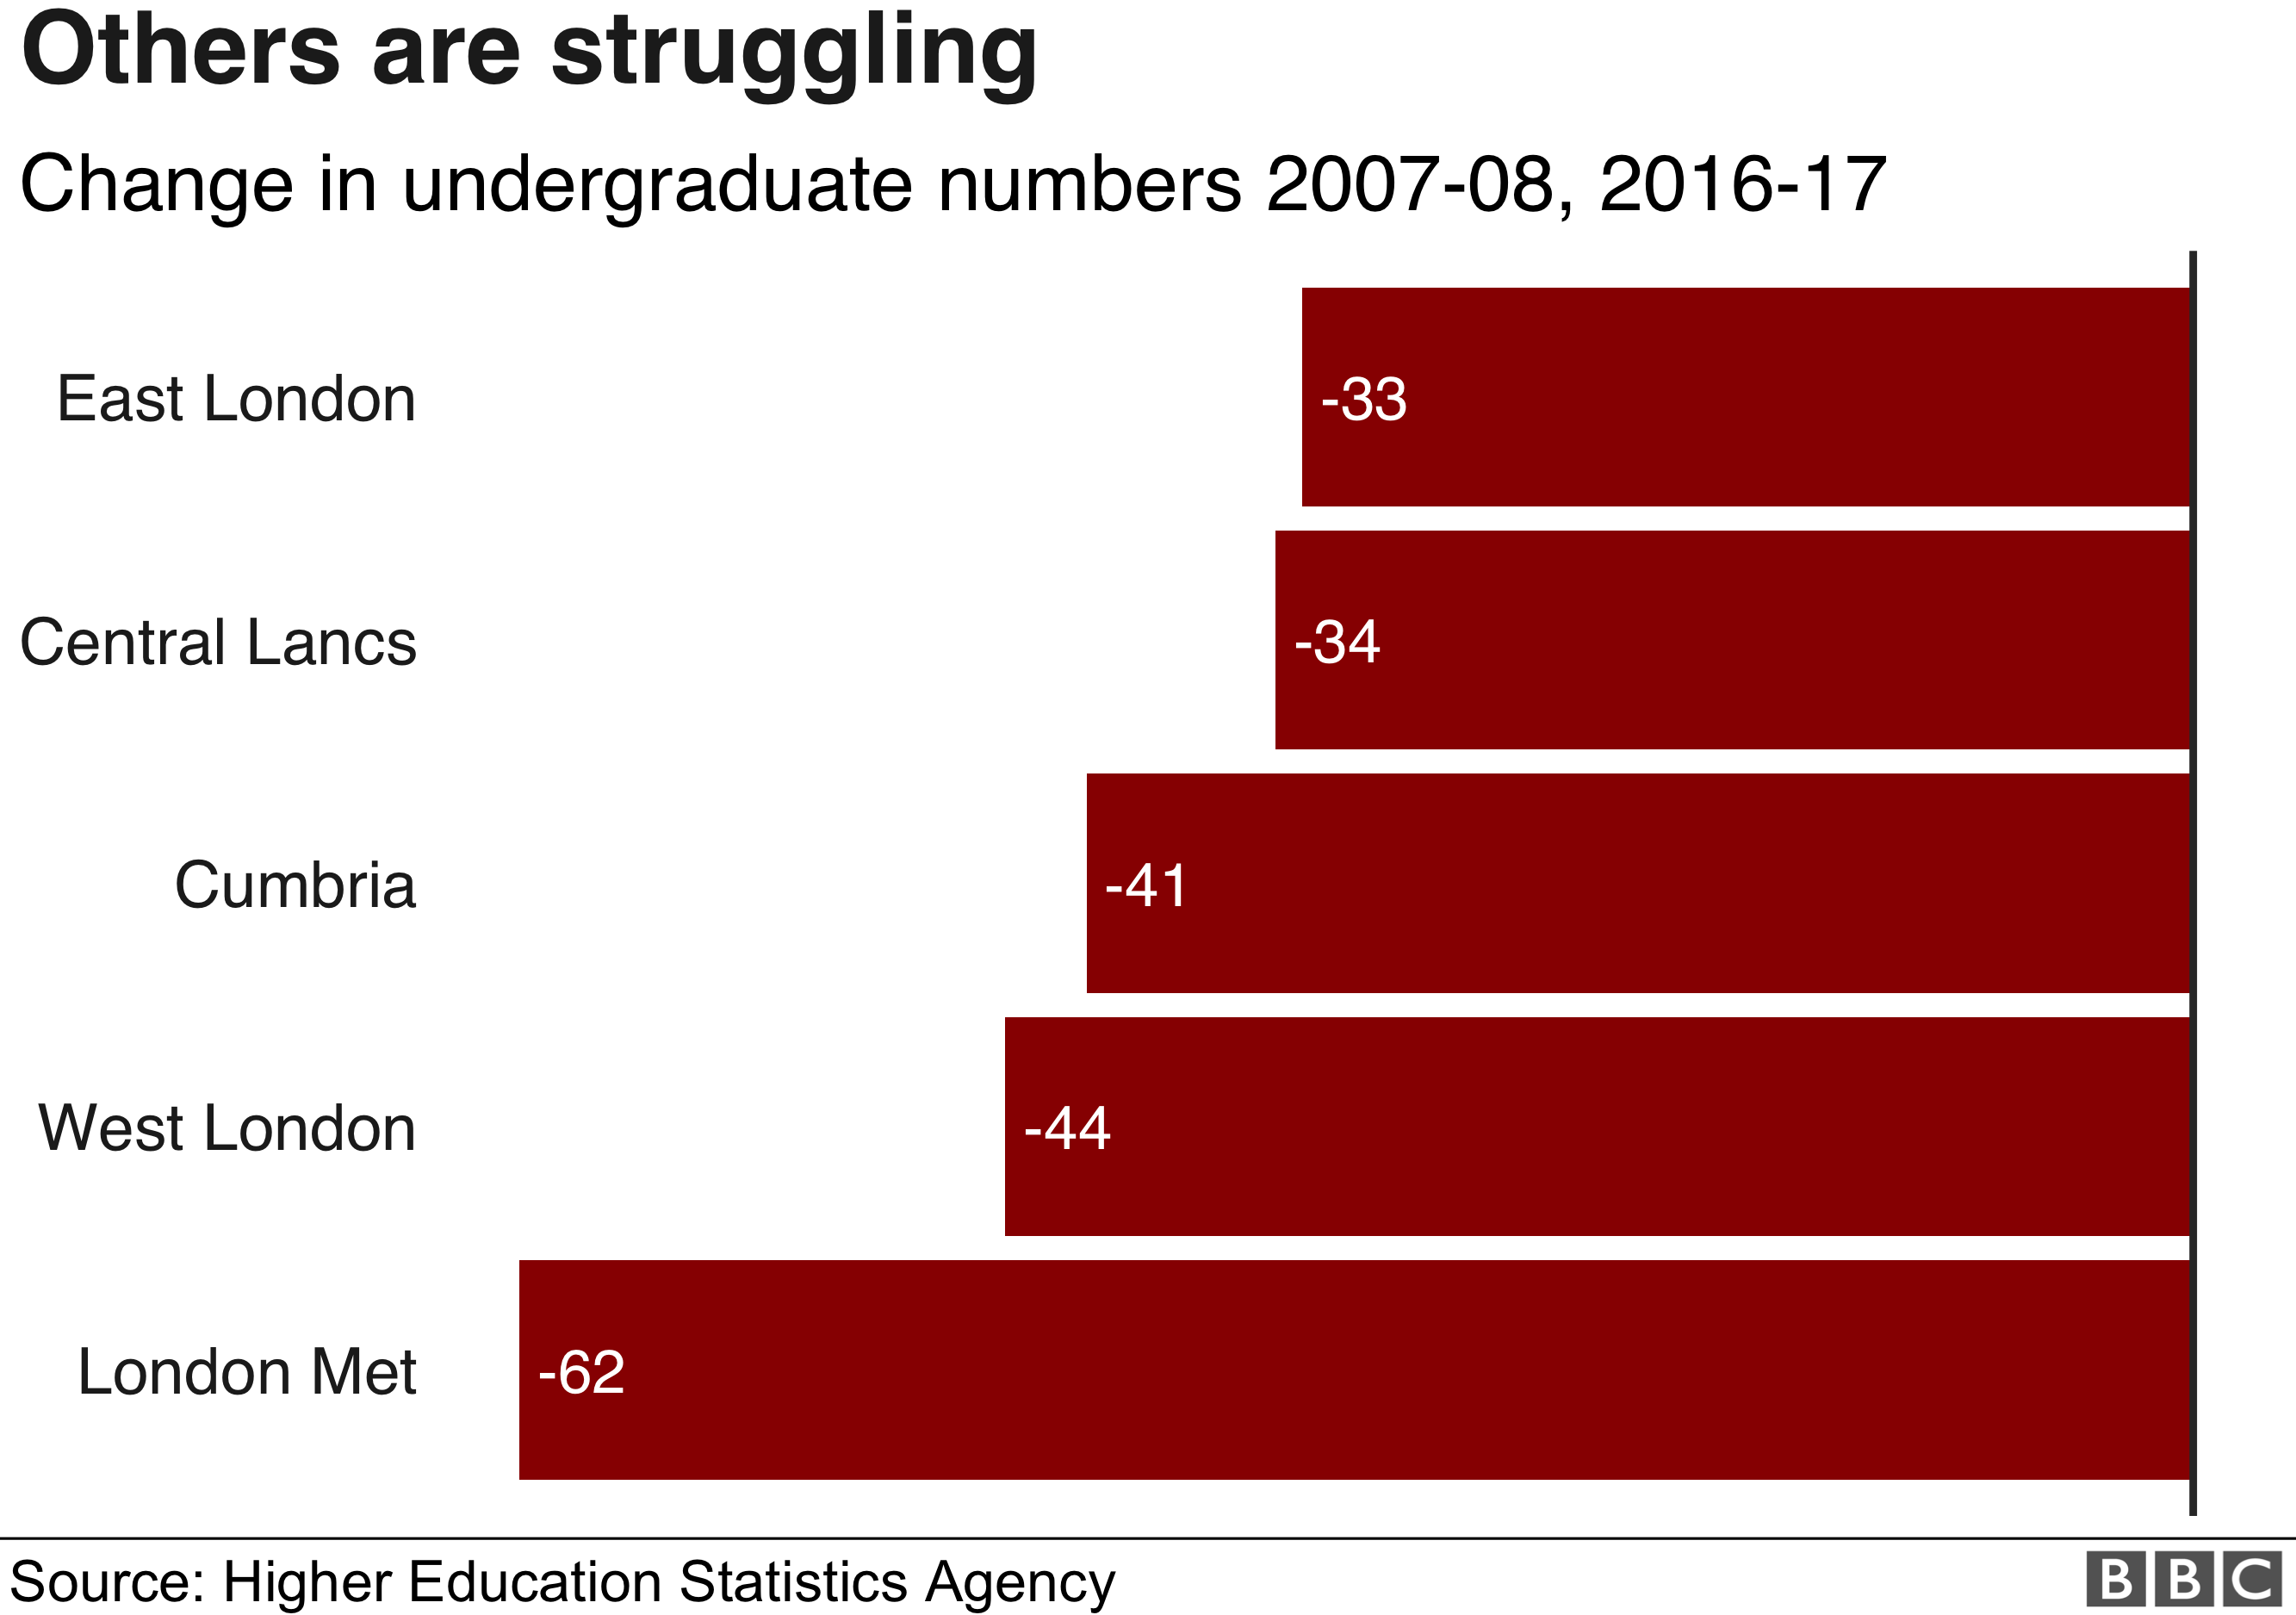 East London, Central Lancs, Cumbria, west London and London Met are the five Universities that have seen the largest decreases between 2007-07 and 2016-17